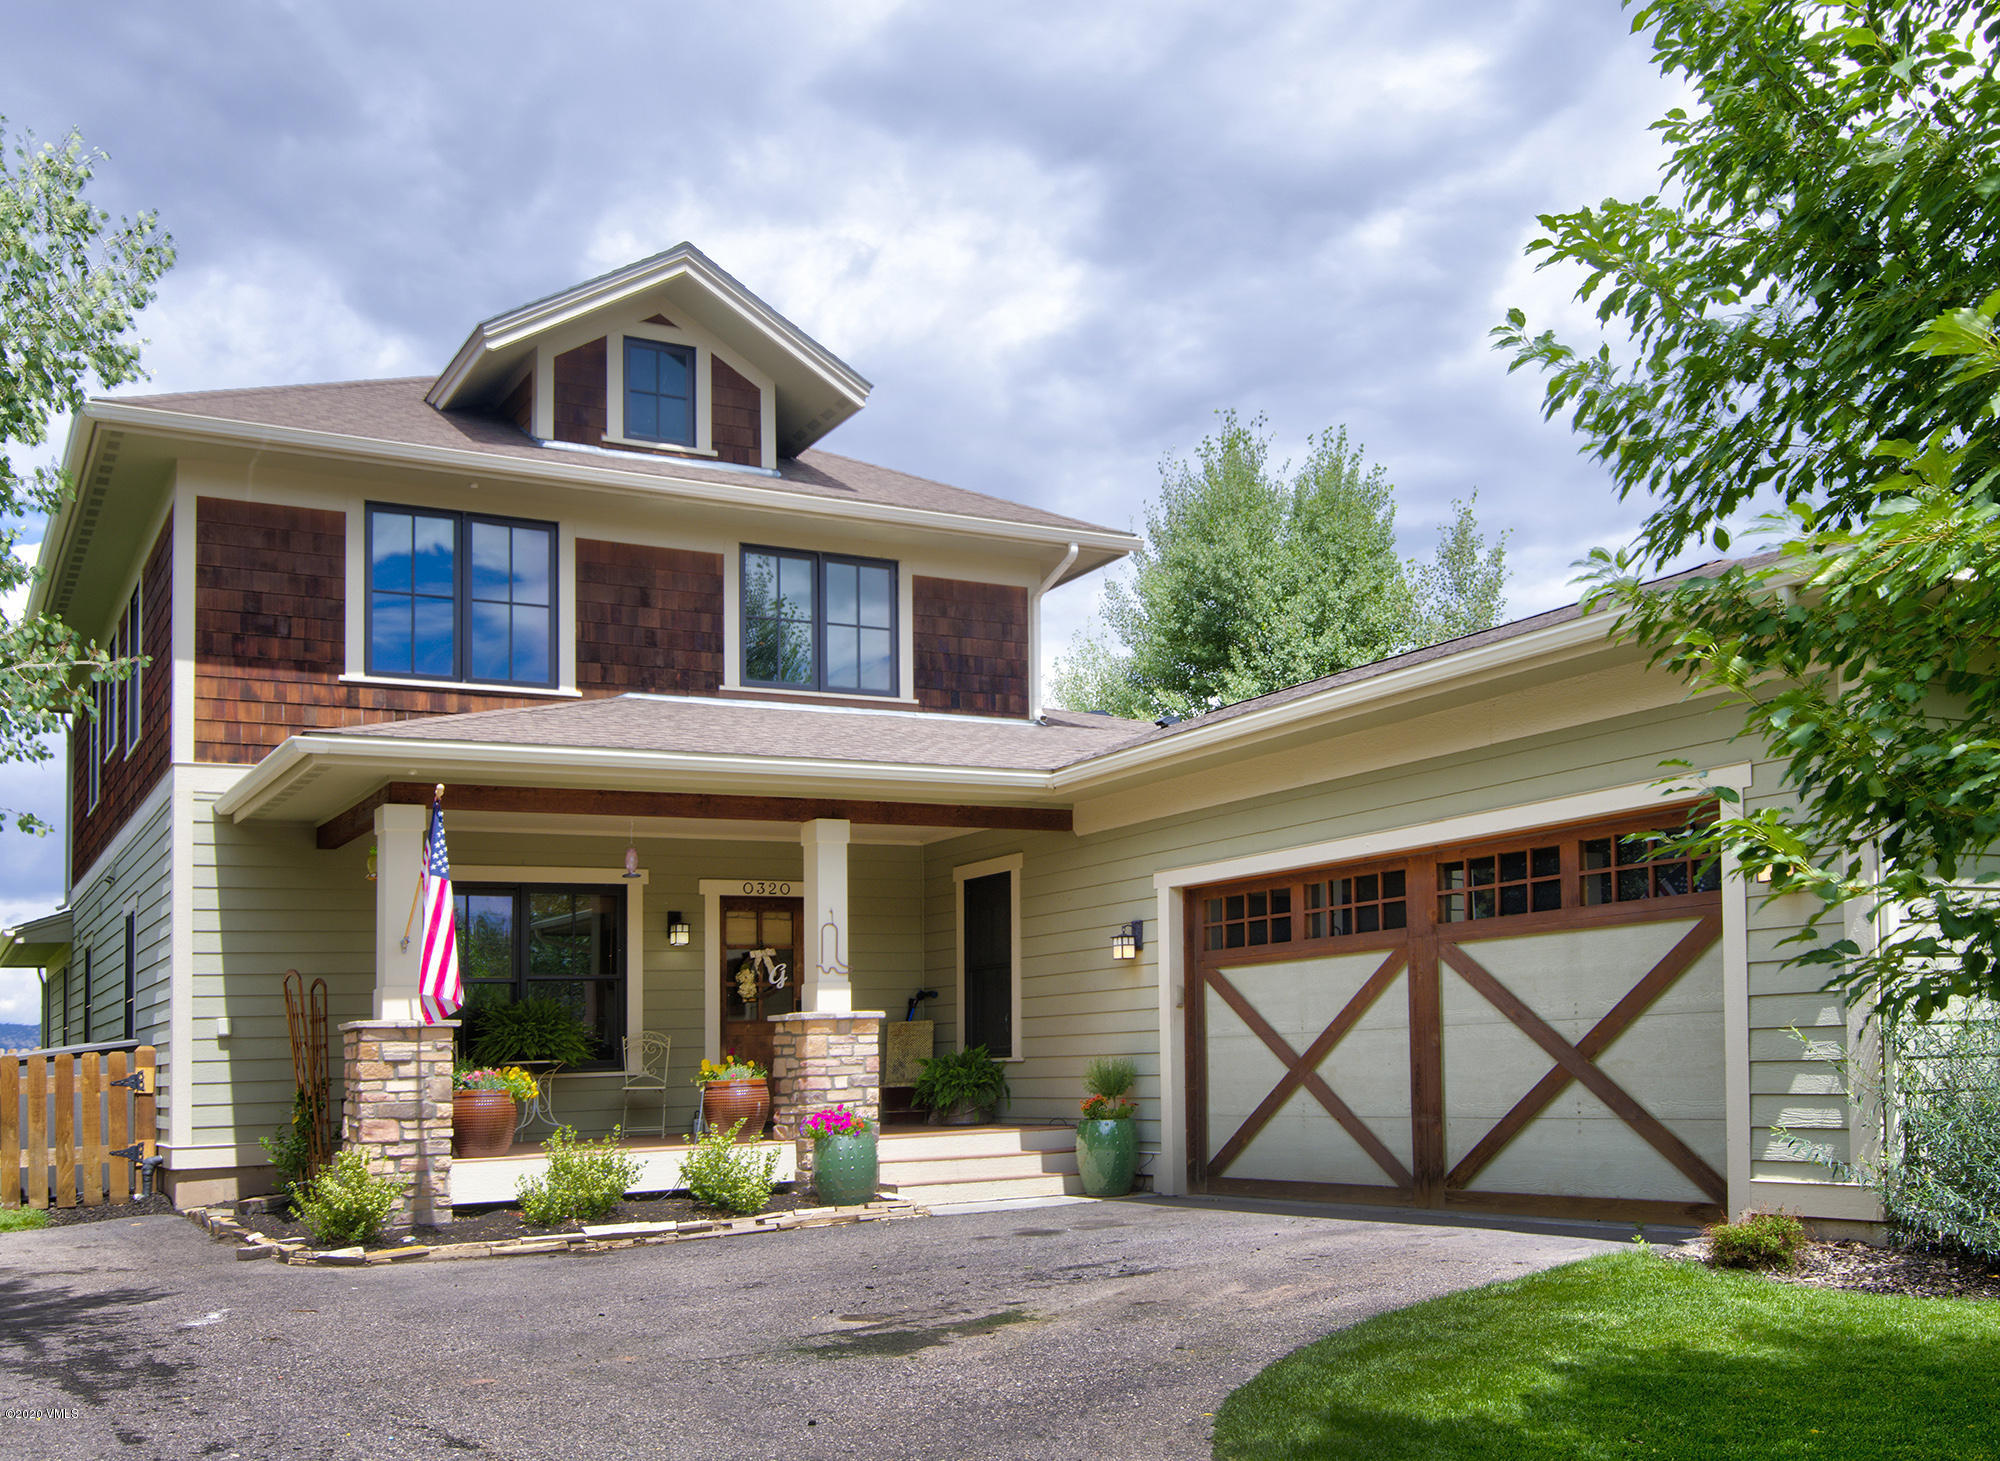 This gorgeous 5 bed/ 5 bath home backs up to the golf course and is in the desirable Aidan's Meadow neighborhood.  With a finished basement, open living/kitchen area, outdoor theater, new paint on the main level, and fenced in yard you will feel at home instantly!